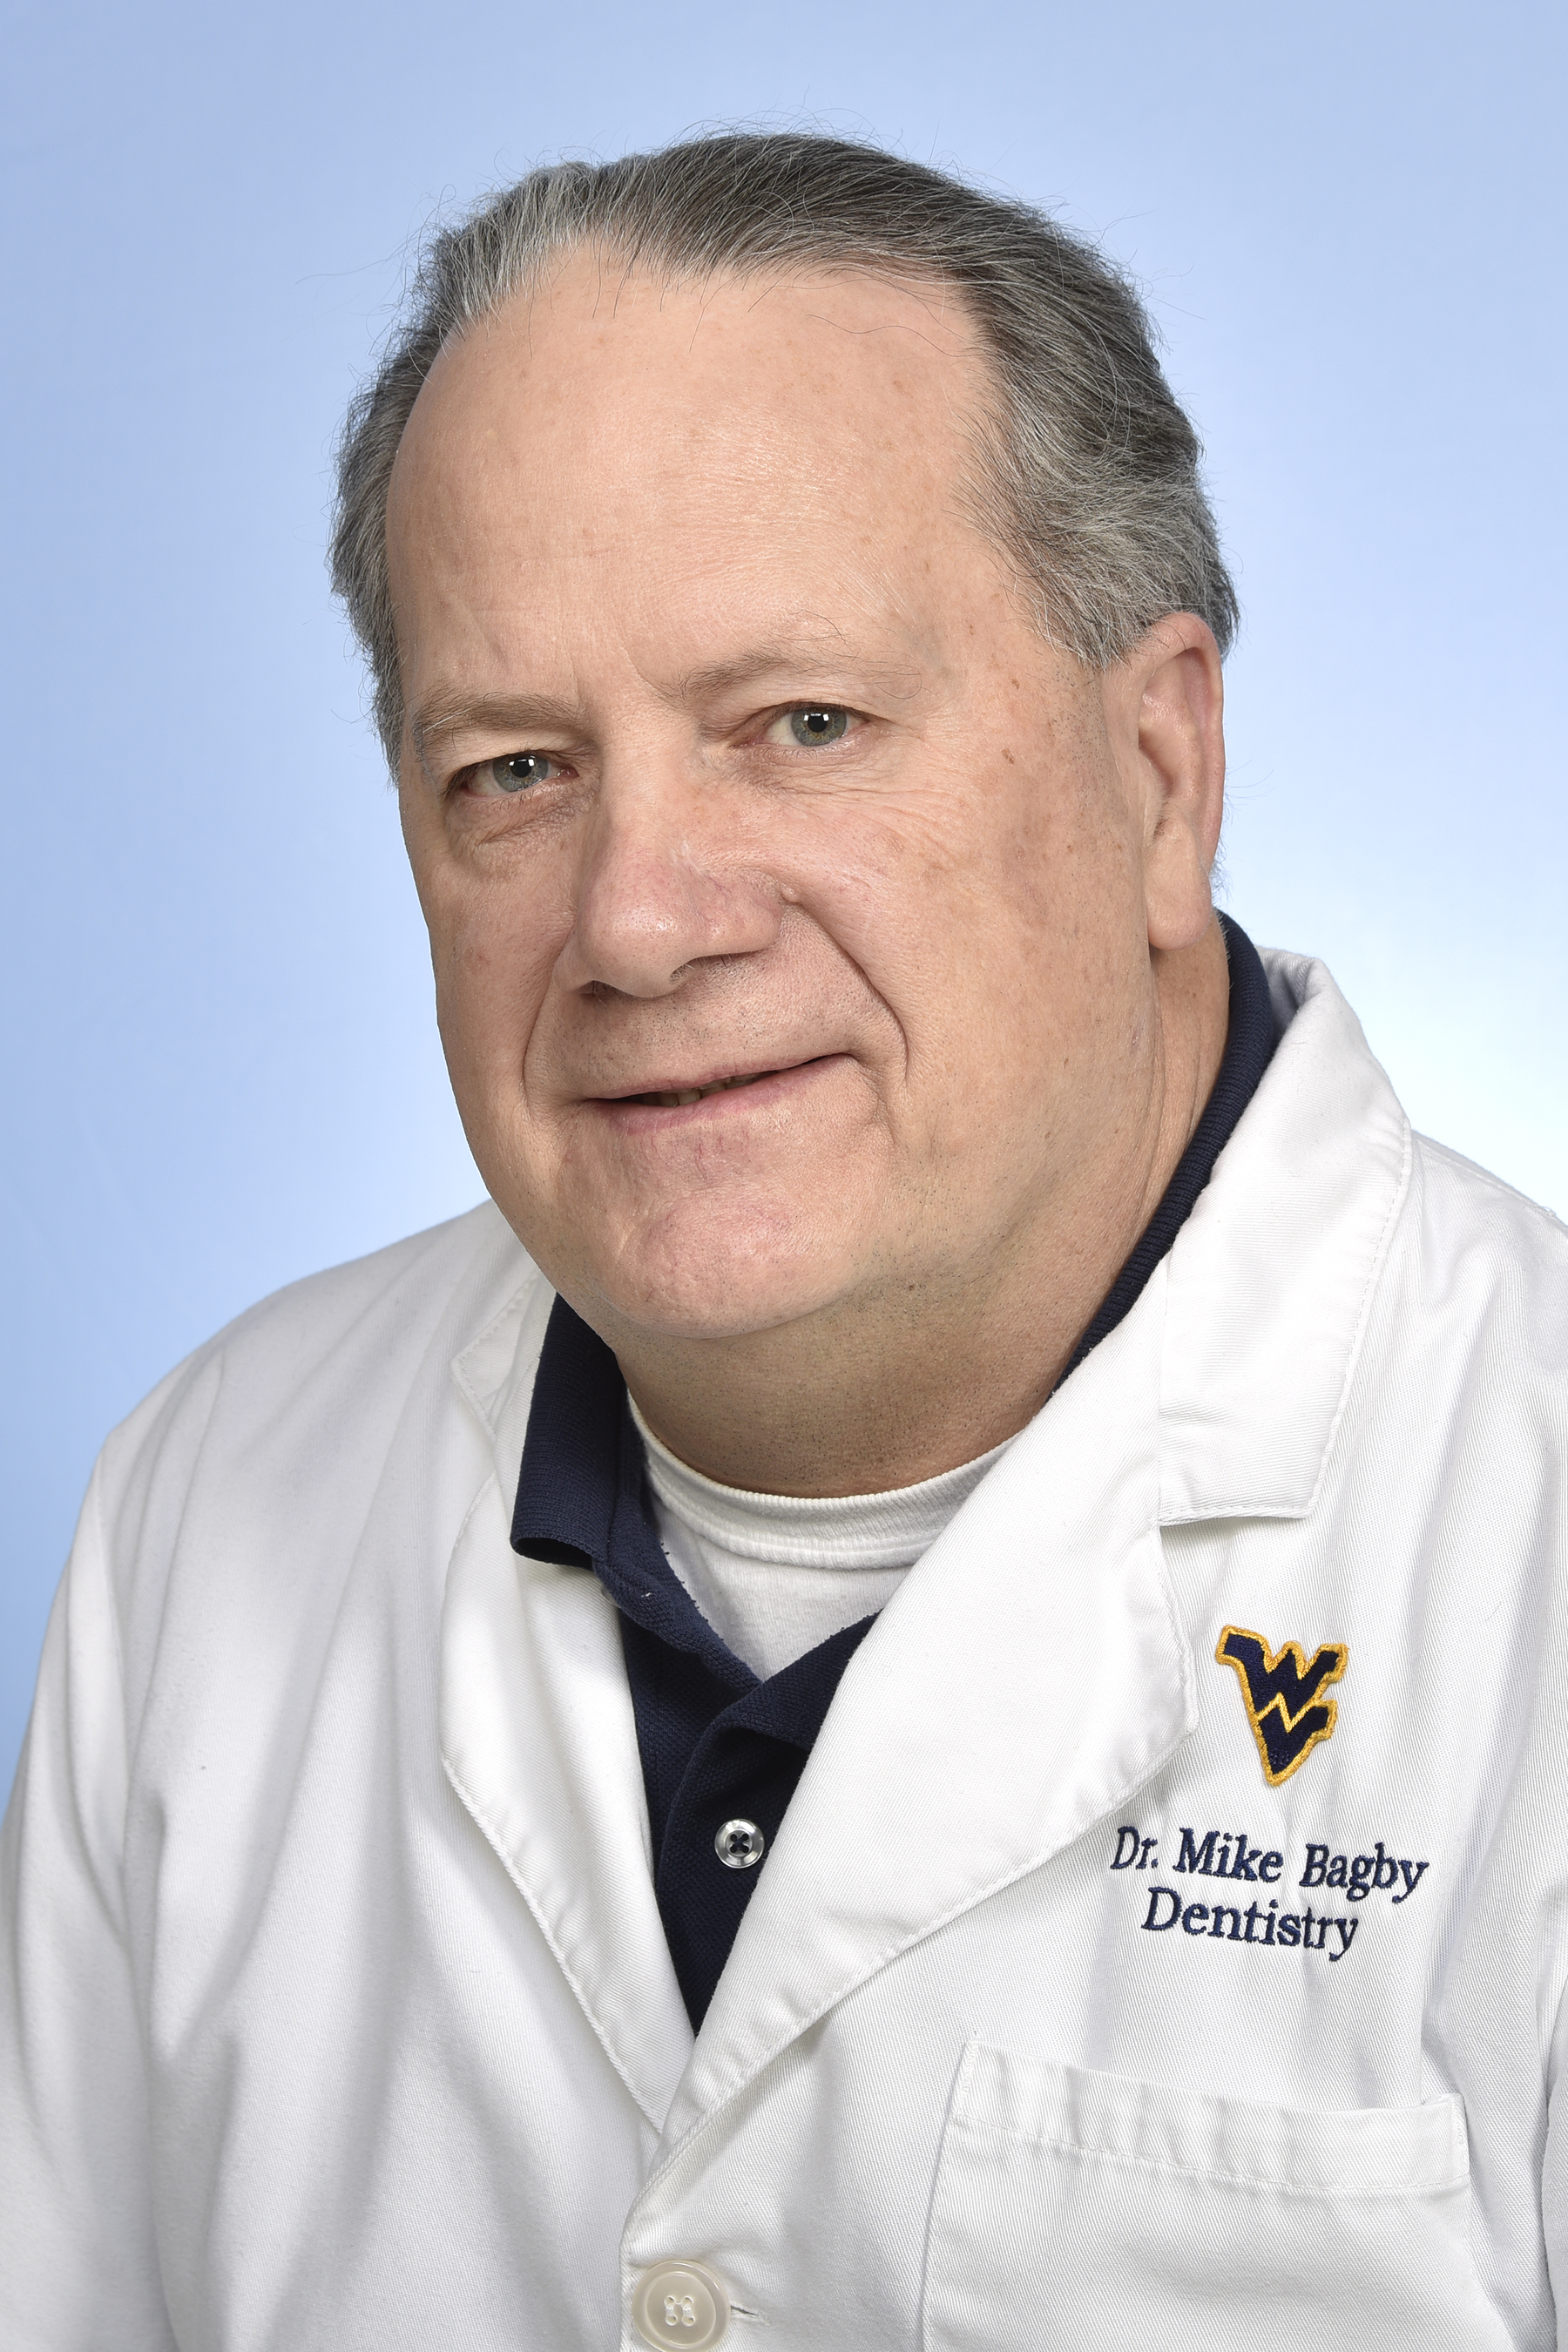 Dr. Mike Bagby was selected as the Mountaineer curiosity value coin recipient.